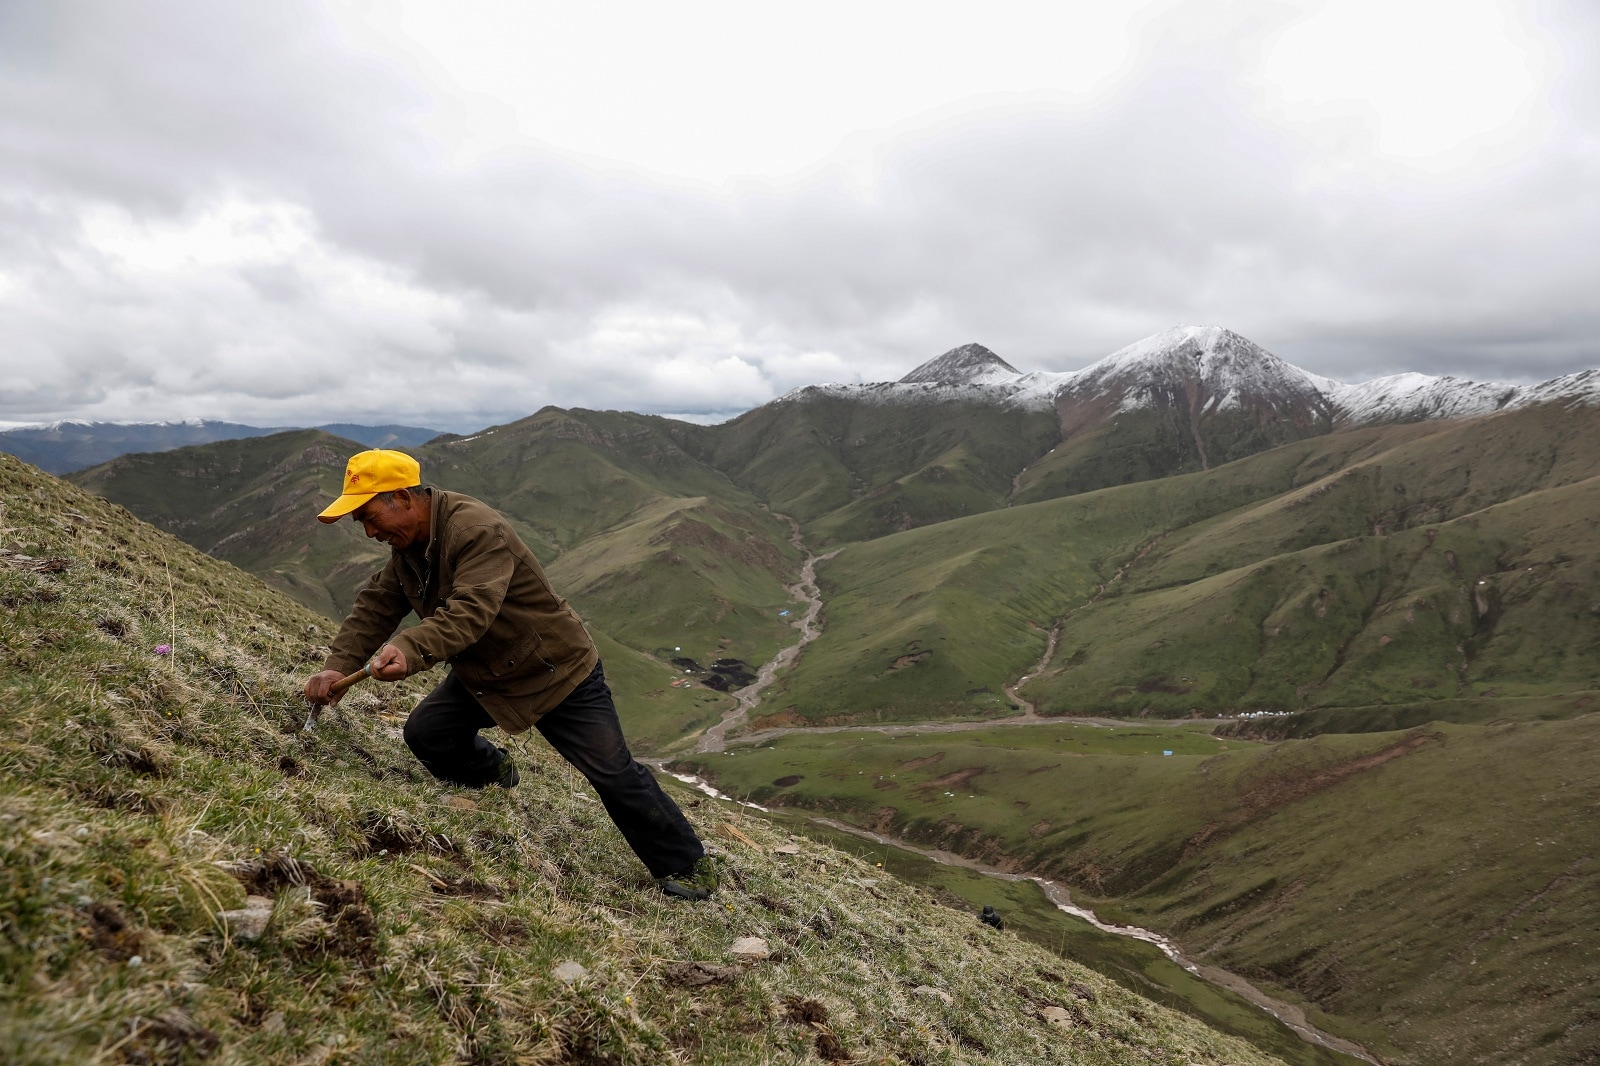 Ma Junxiao, 49, an ethnic Hui Muslim farmer from remote western China, scans the ground to find cordyceps, a fungus believed to possess aphrodisiac and medicinal powers, on a mountain in the Amne Machin range in China's western Qinghai province, June 8, 2019. Ma has been picking cordyceps in Qinghai for the past 14 years.